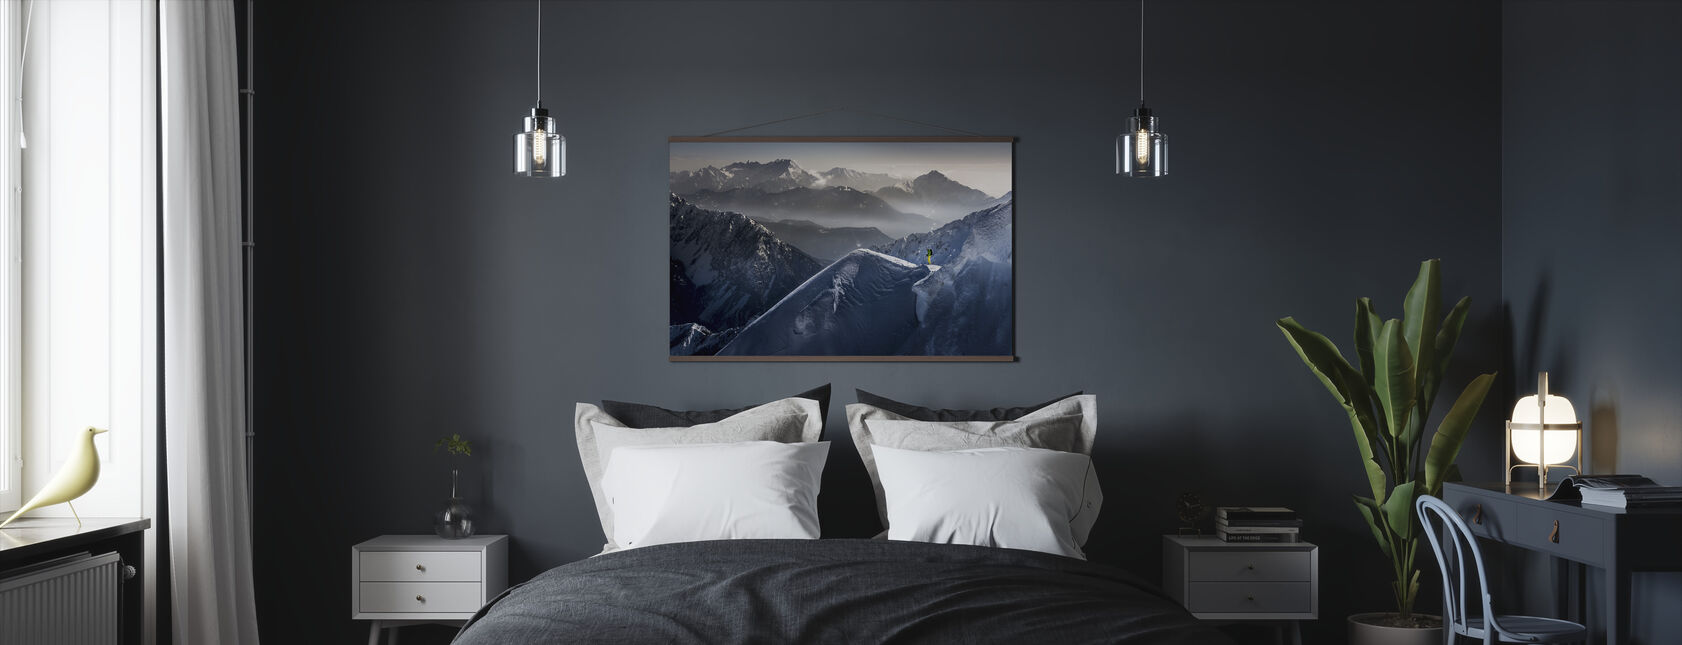 Skier on Mountain Top - Poster - Bedroom